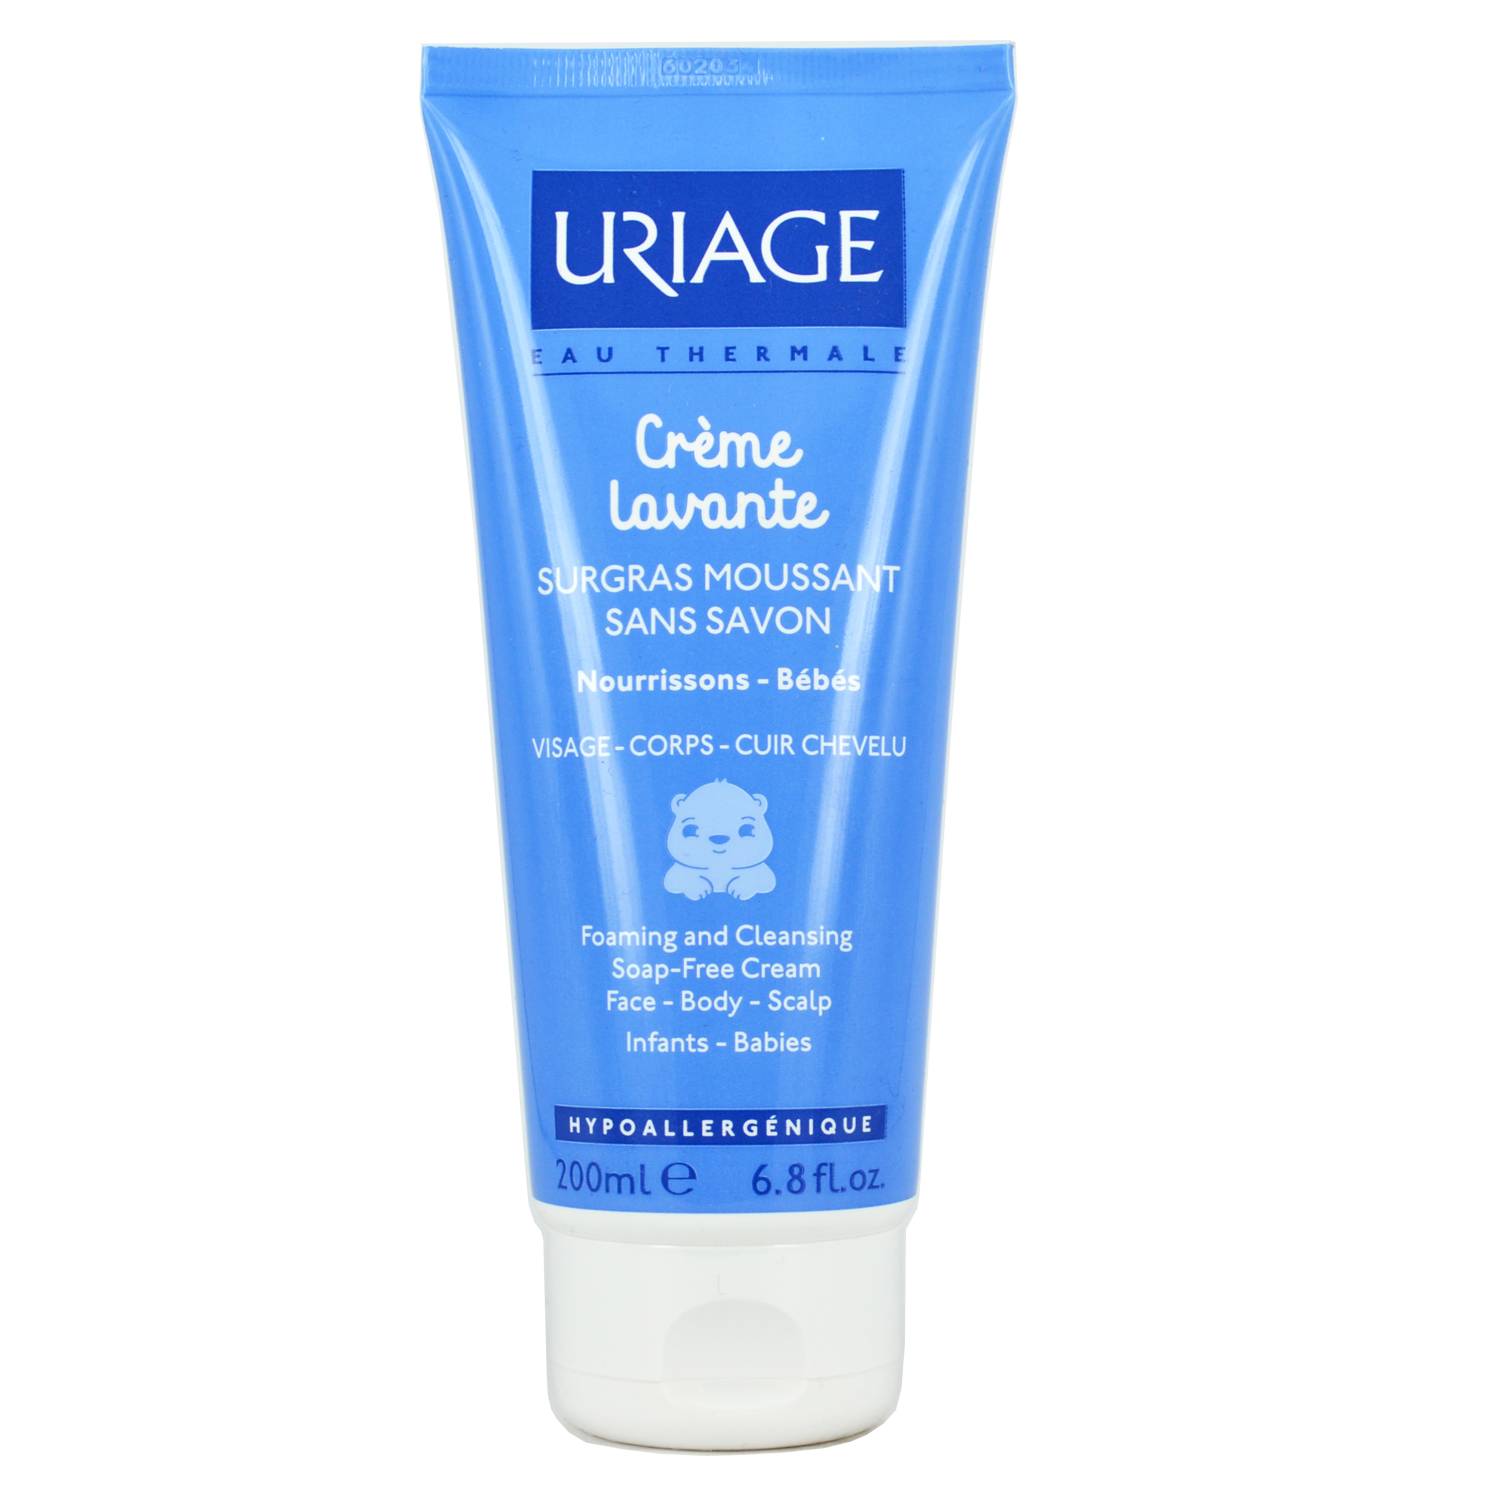 Uriage Creme Lavante Foaming and Cleansing Soap Free Cream 200ml